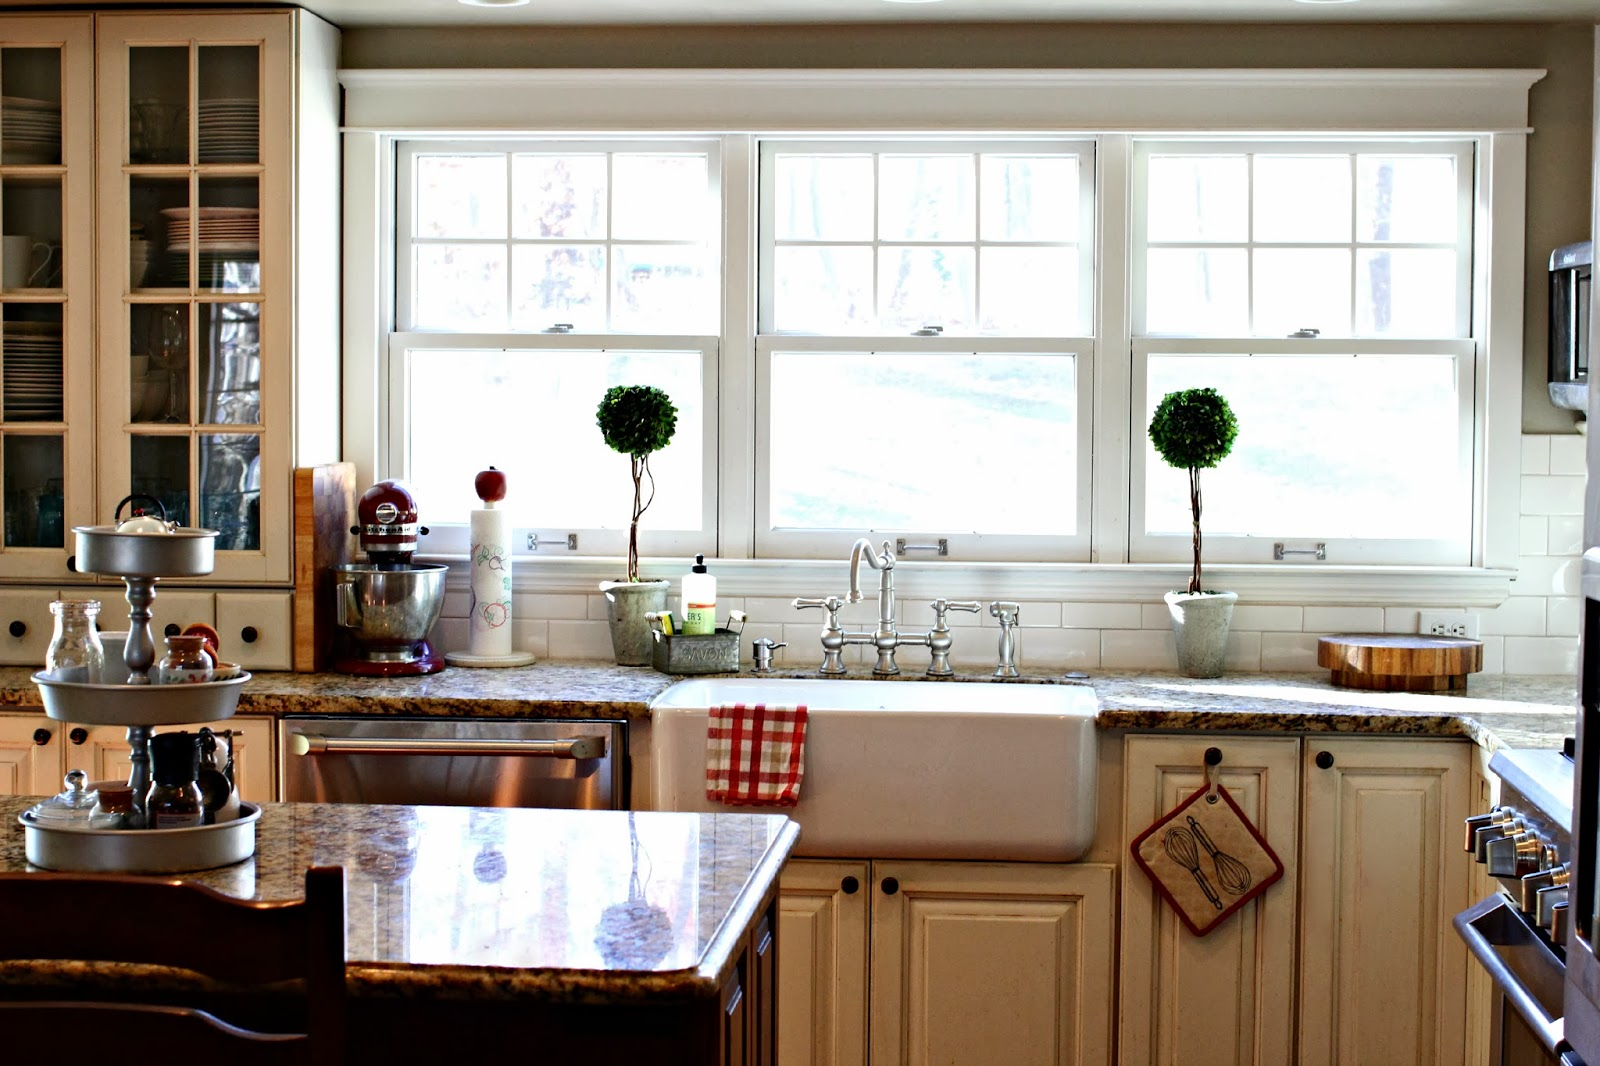 Belle Foret Farmhouse Sink Golden Boys And Me Our Latest Kitchen Makeover Reveal